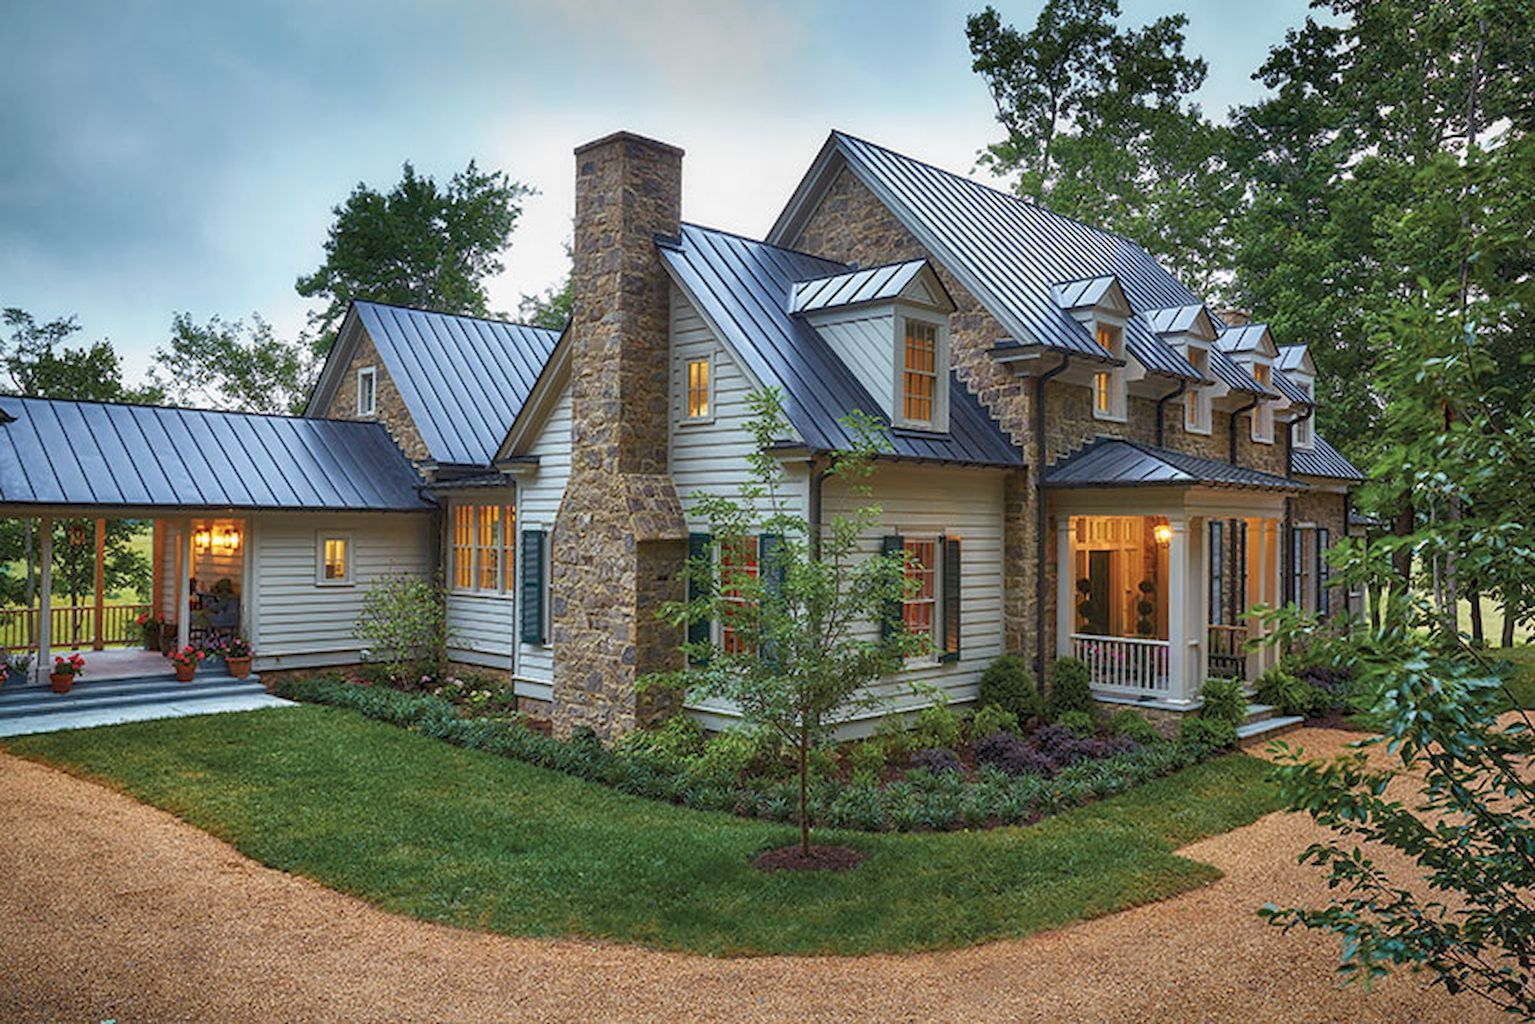 Aesthetic farmhouse exteriors design ideas (64) Modern